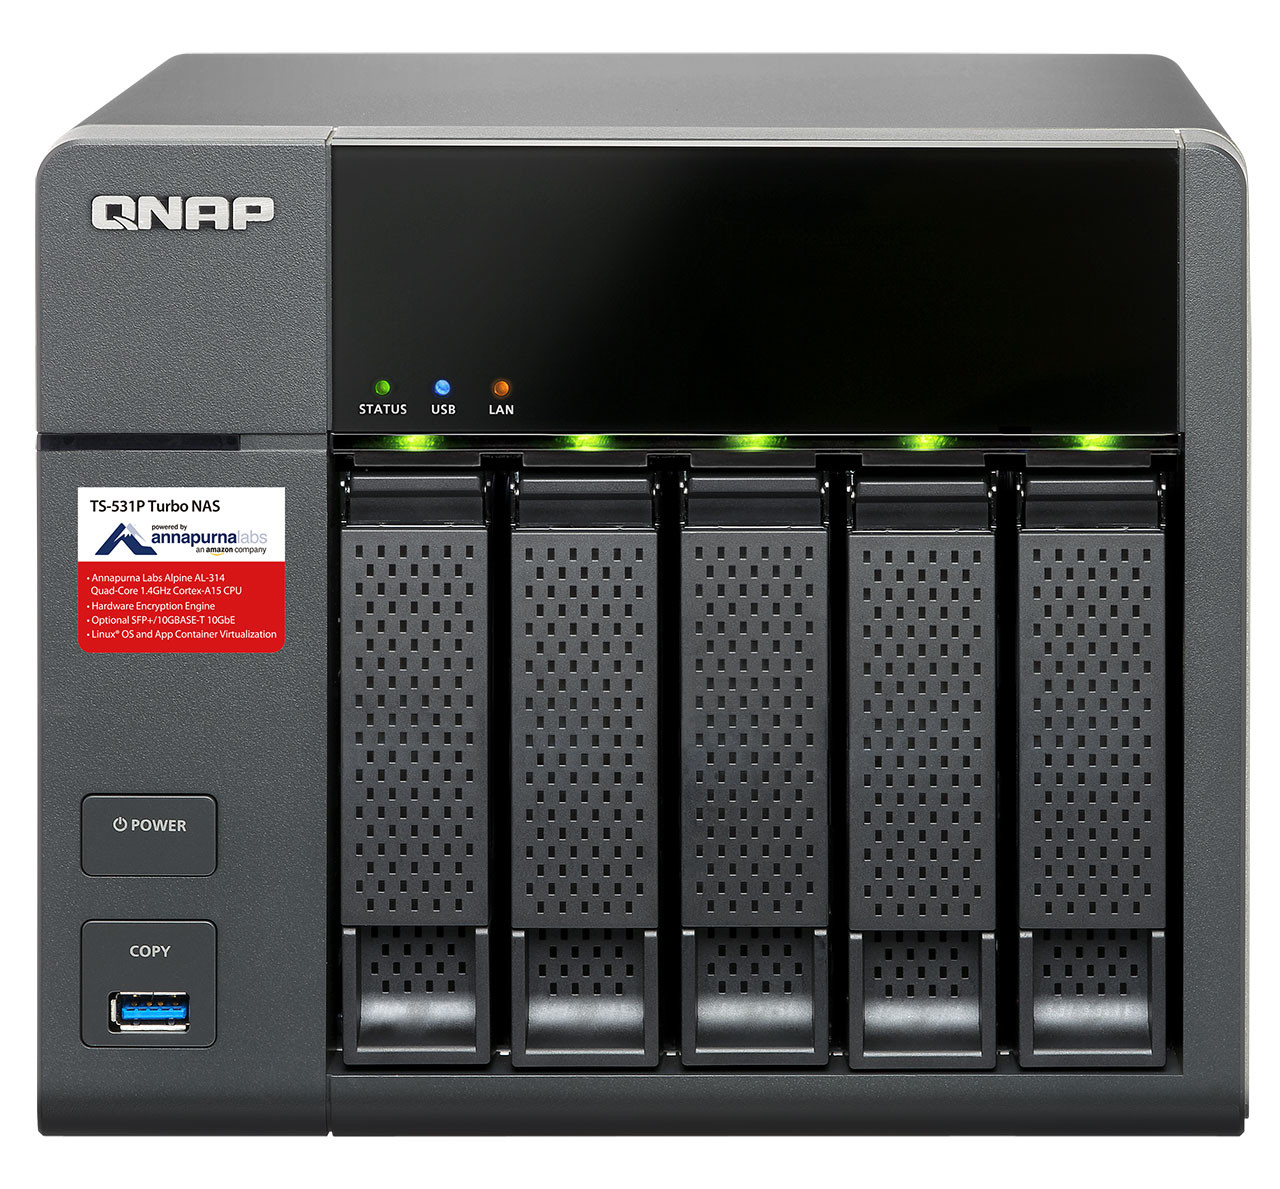 QNAP Launches the Powerful Quad-core TS-531P With 10GbE Support